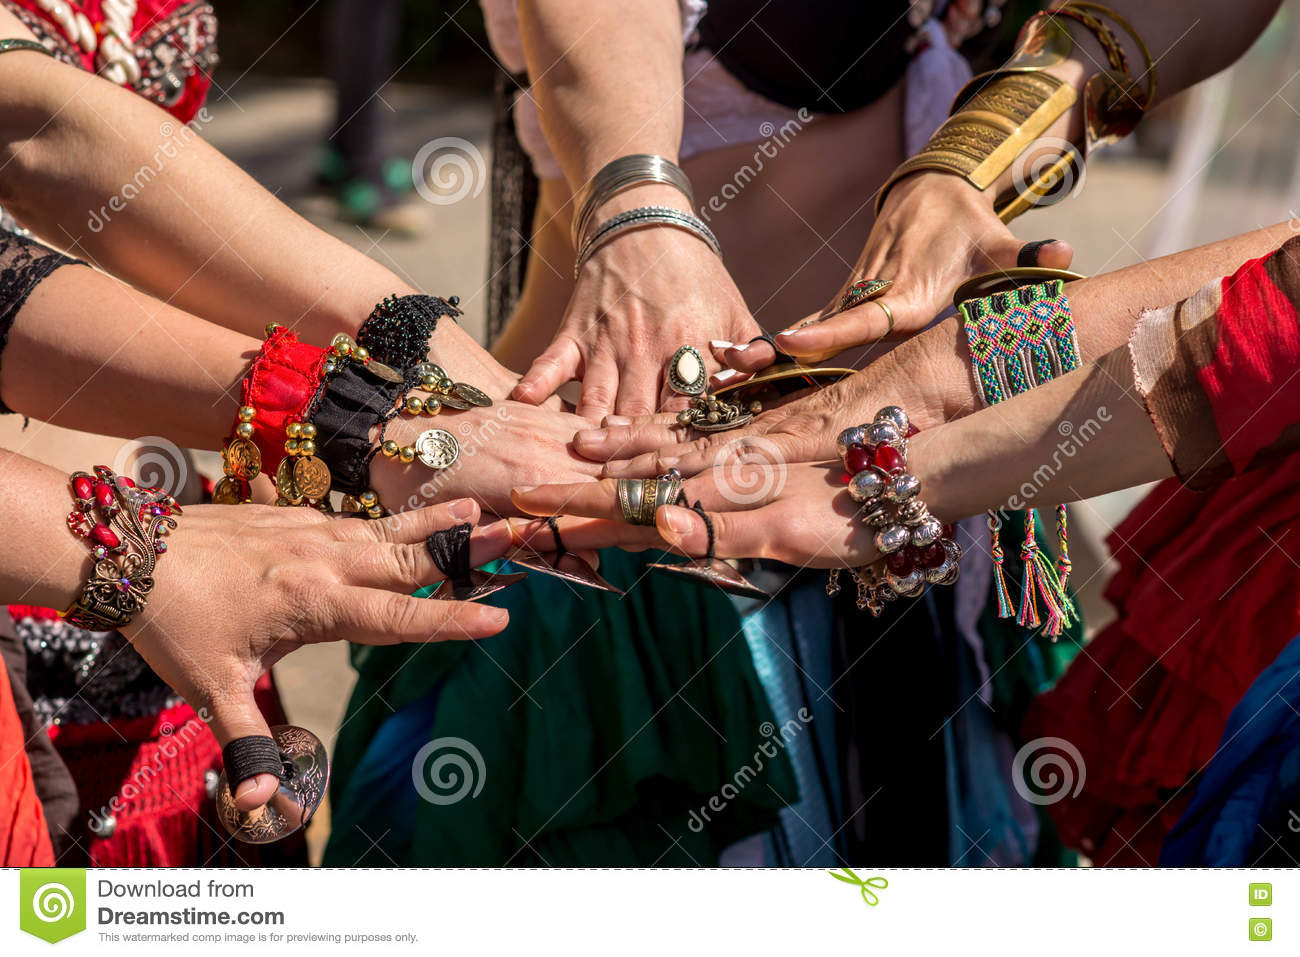 Many hands together showing unity